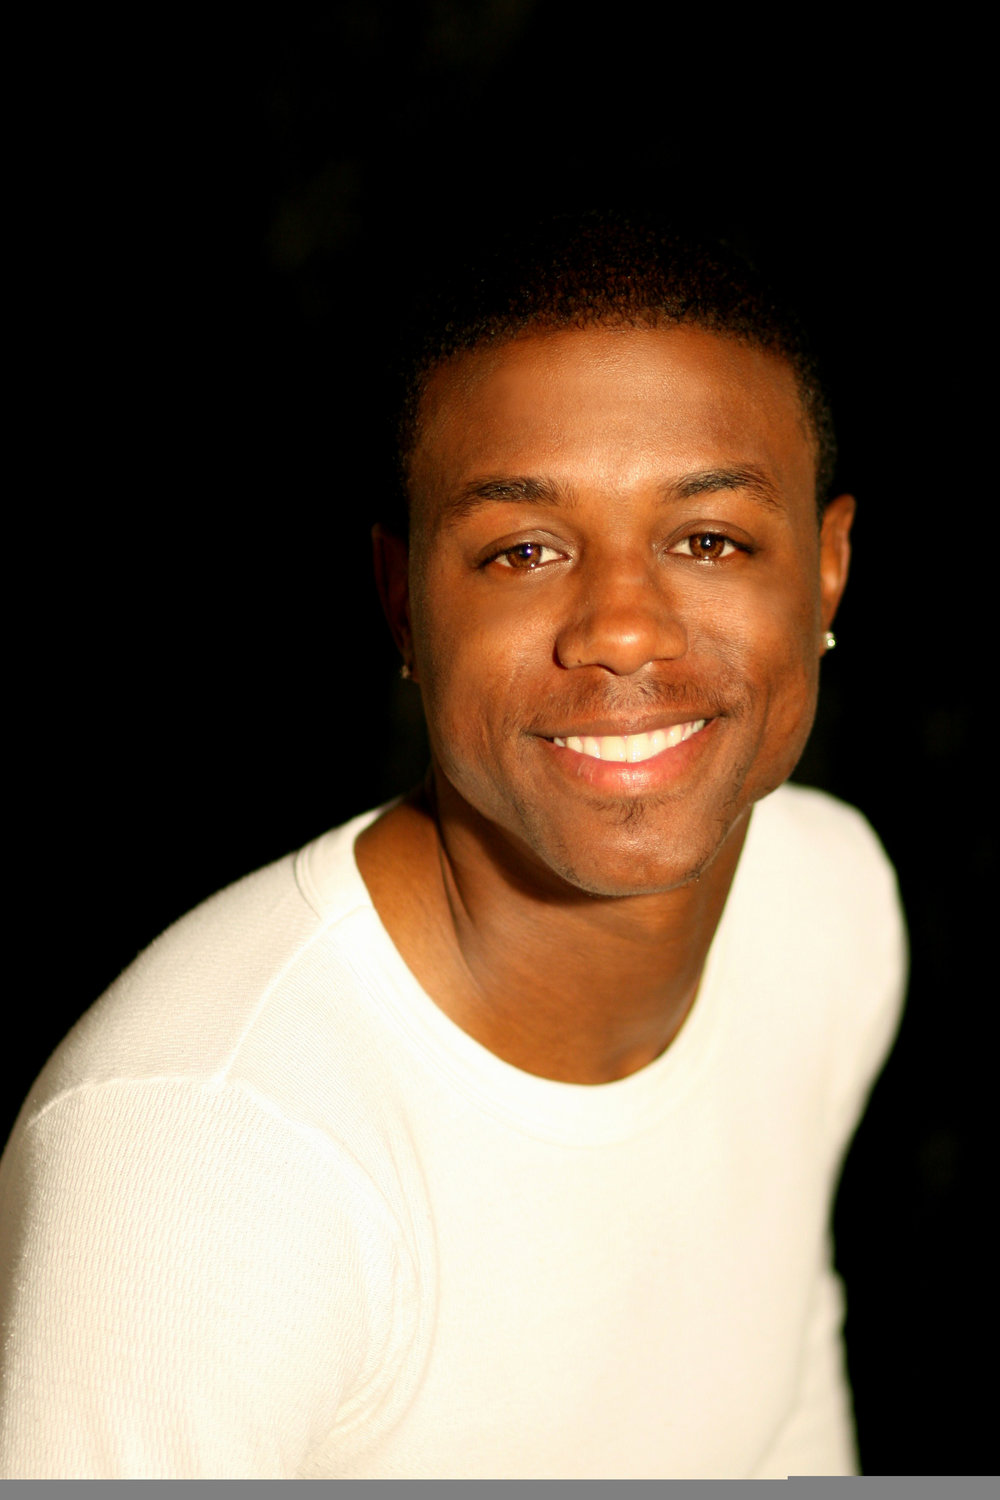 Christopher Broughton, born and raised in Los Angeles, CA, Chris began dancing at the age of 11 and has never looked back. Under the instruction of Paul and Arlene Kennedy at Universal Dance, he soon became a member of The Kennedy Tap Company where he received the national NAACP ACT-SO Award, twice. He now travels worldwide both as a soloist and with Jason Samuels Smith's A.C.G.I., Rasta Thomas'Tap Stars, and Dorrance Dance. Performances include New York City Center's Cotton Club Parade; Juba! Master's of Tap & Percussive Dance at the Kennedy Center; and Broadway's Tony & Astaire award-winning production After Midnight.Christopher owes his sincerest gratitude to his sister, Chantel Heath, who introduced him to the world of dance, Tonie Nicholas, son of the legendary Fayard Nicholas, and Paul and Arlene Kennedy; without whom, he wouldn't be where he is today.